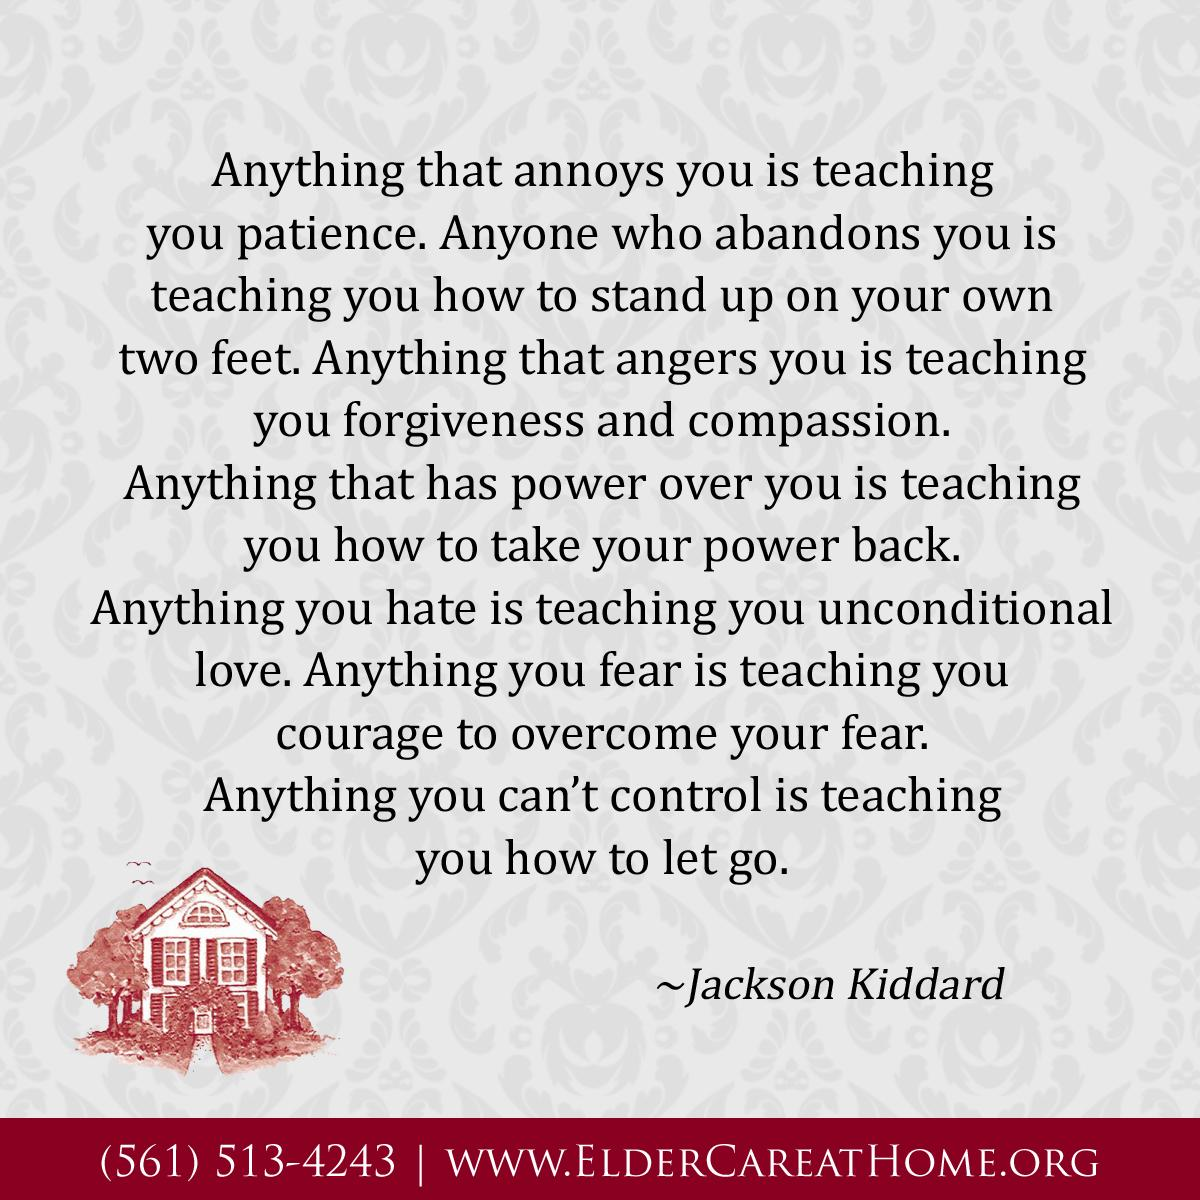 anything by jackson kiddard copy eldercare at home anything by jackson kiddard